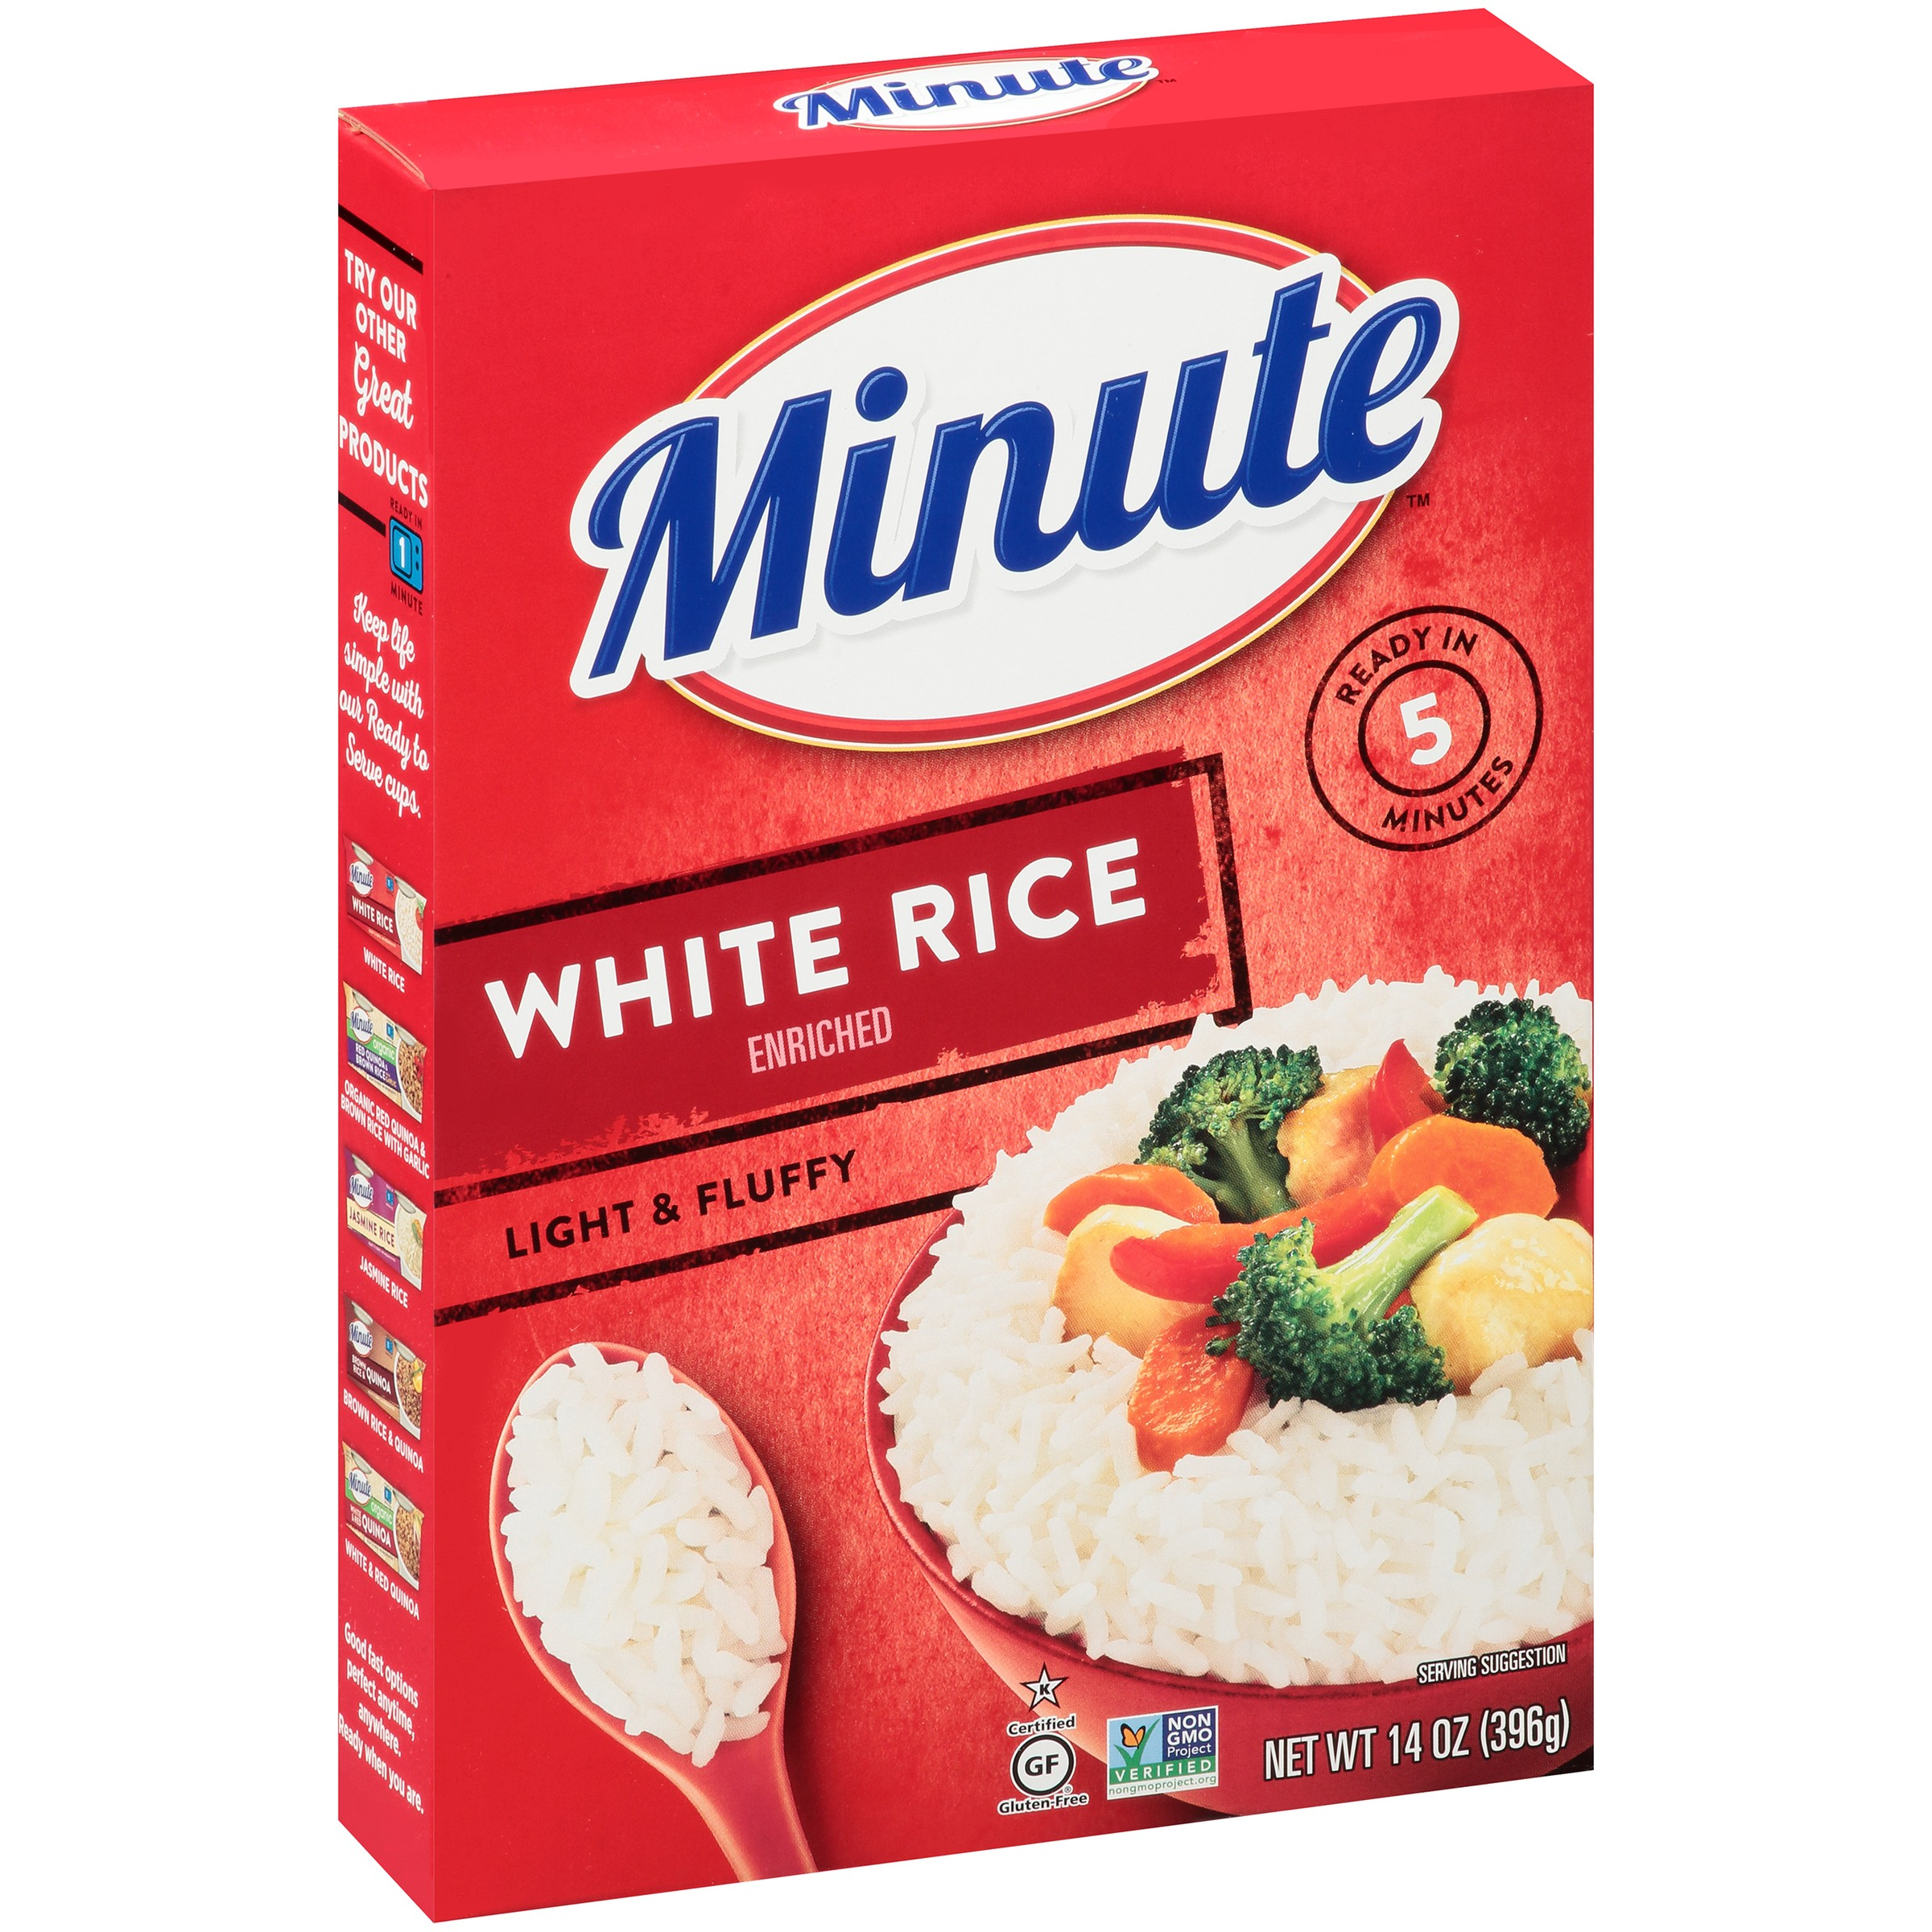 Minute White Instant Enriched Long Grain Rice 14 Oz Box